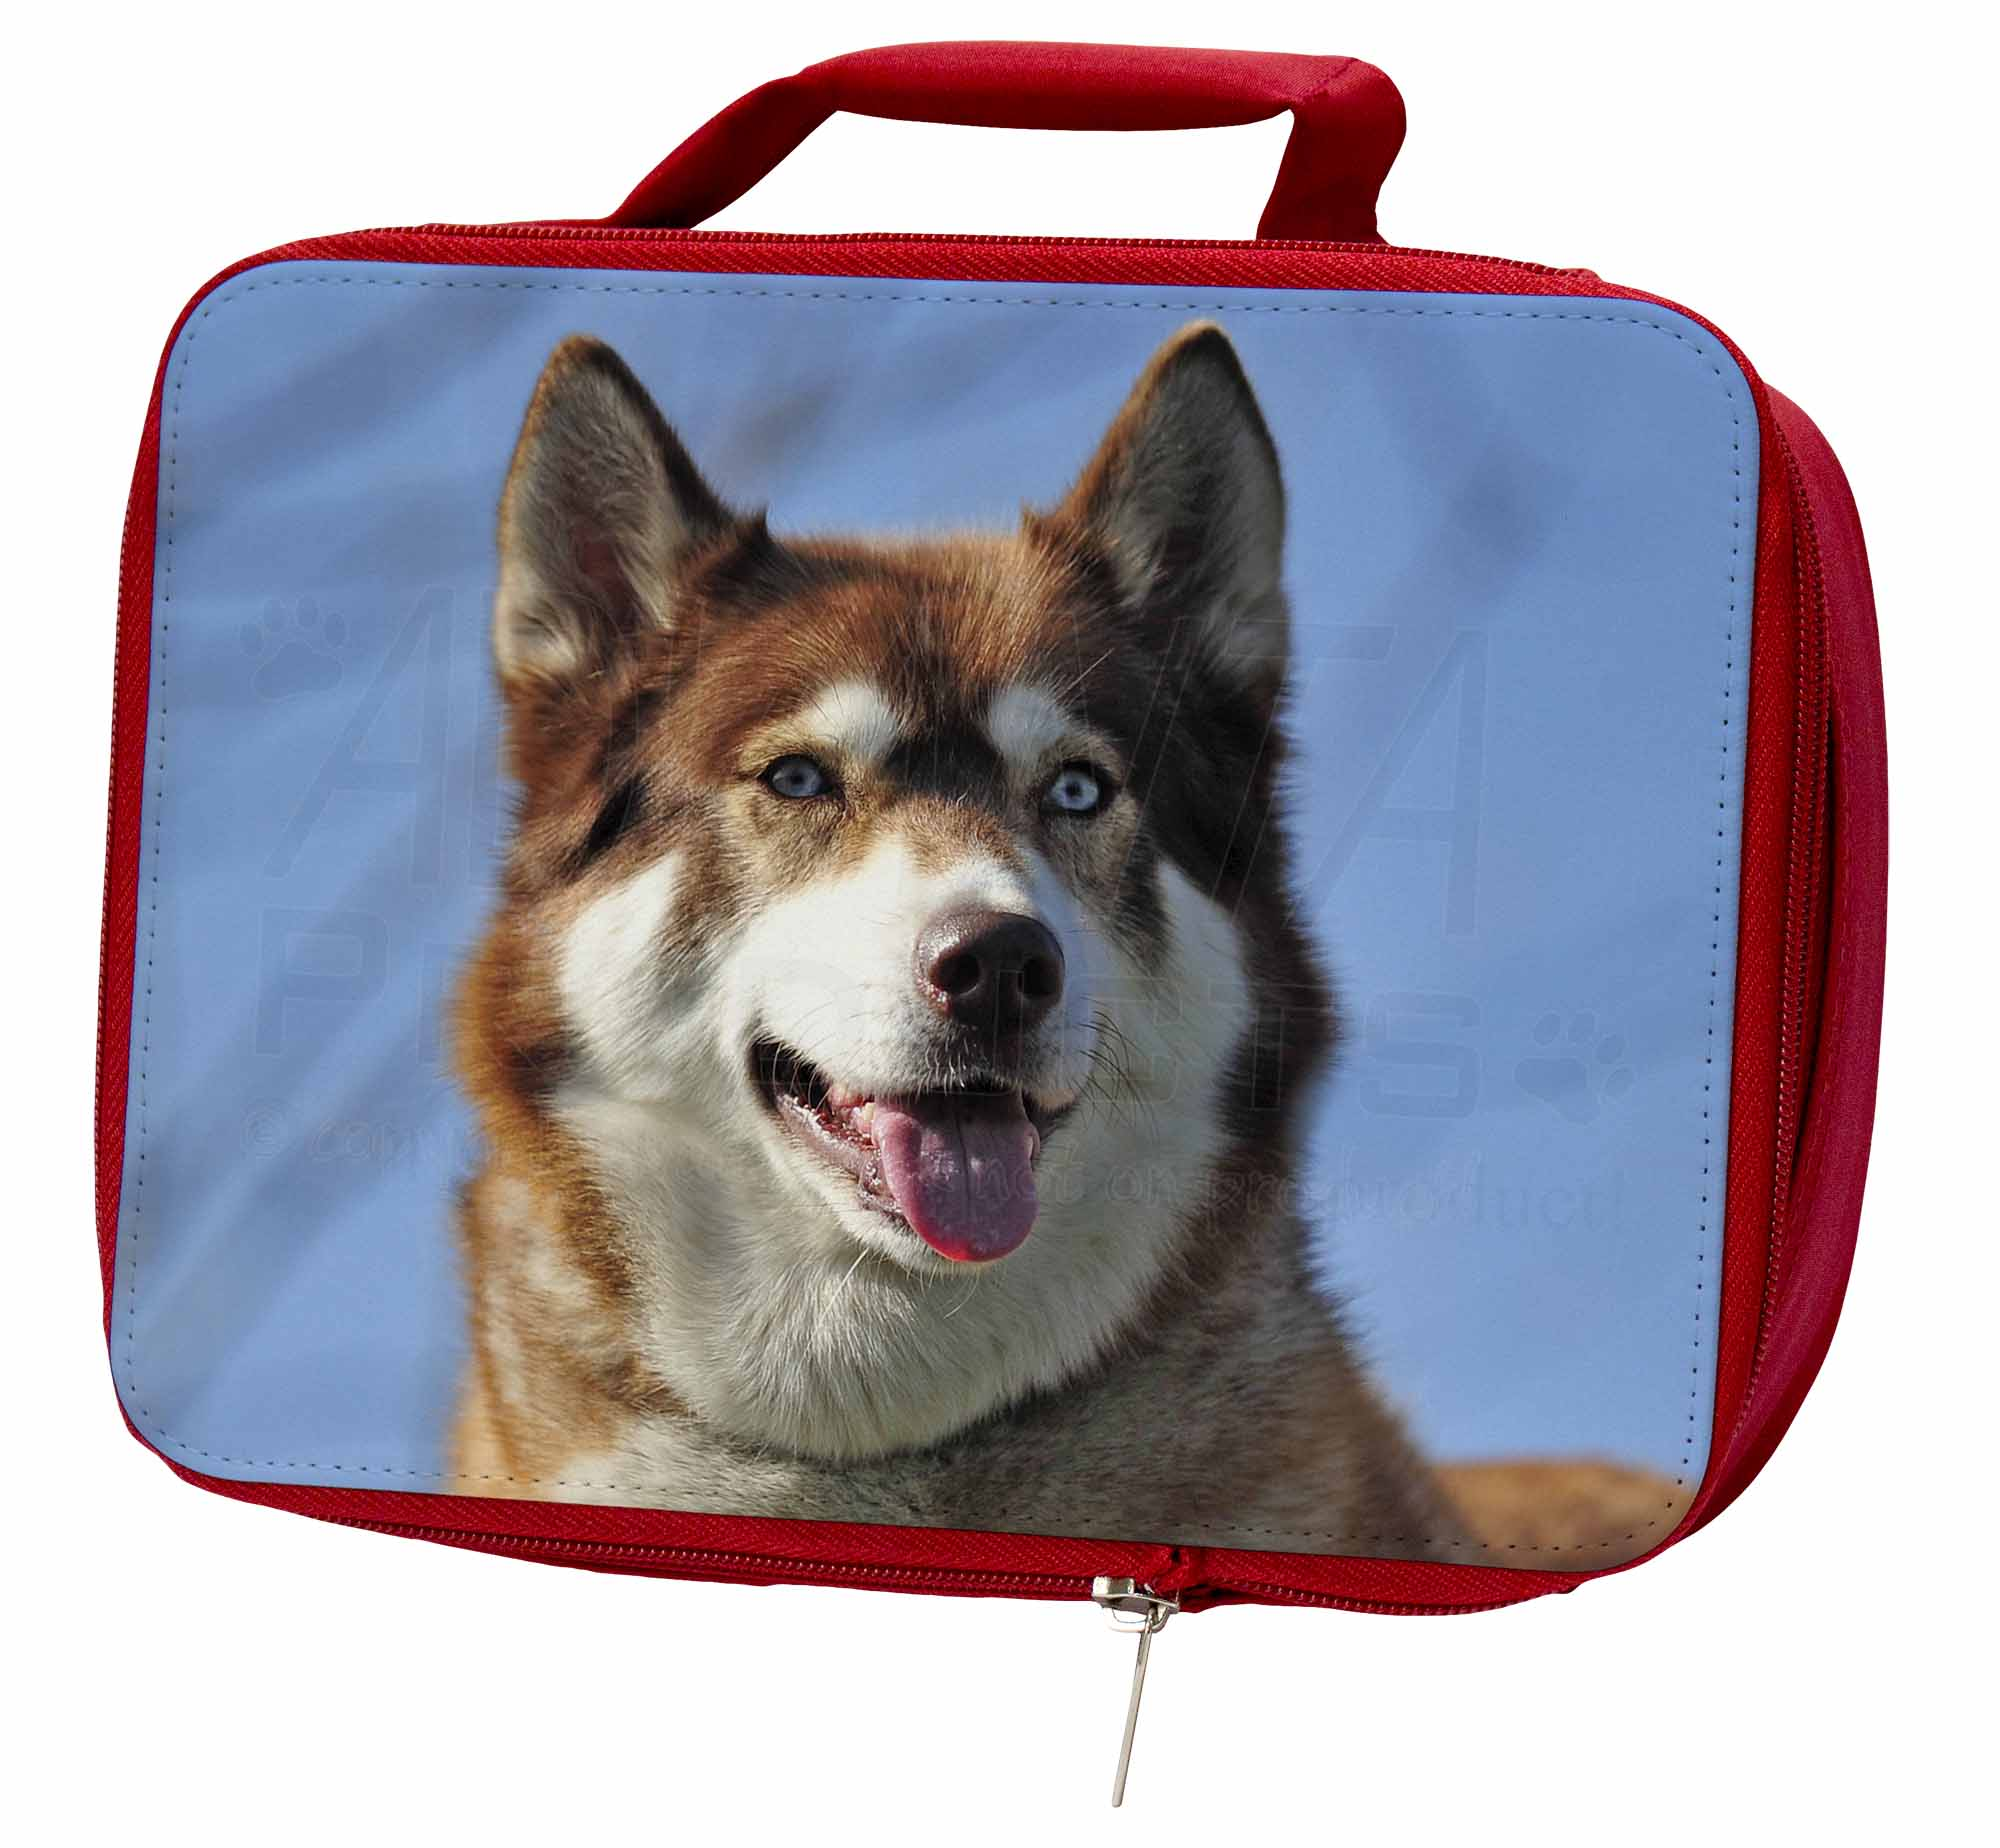 Red Husky Dog Insulated Red School AD-H68LBR Lunch Box/Picnic Bag, AD-H68LBR School 733c7a